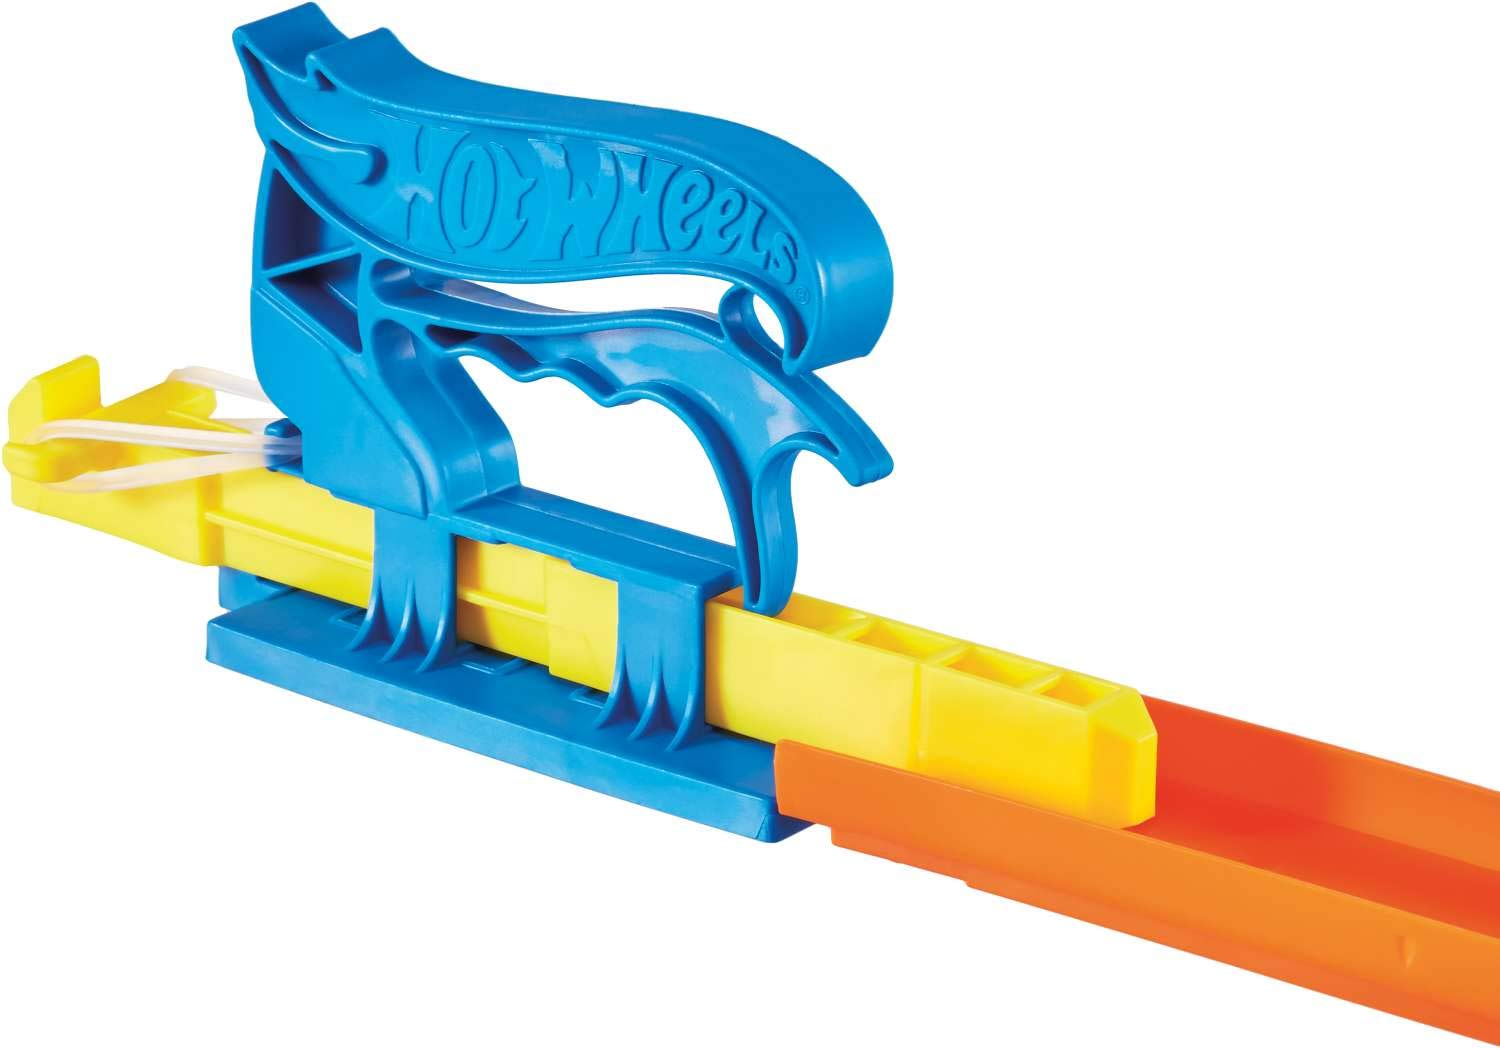 Hot Wheels Pocket Launcher Playset with Car Red